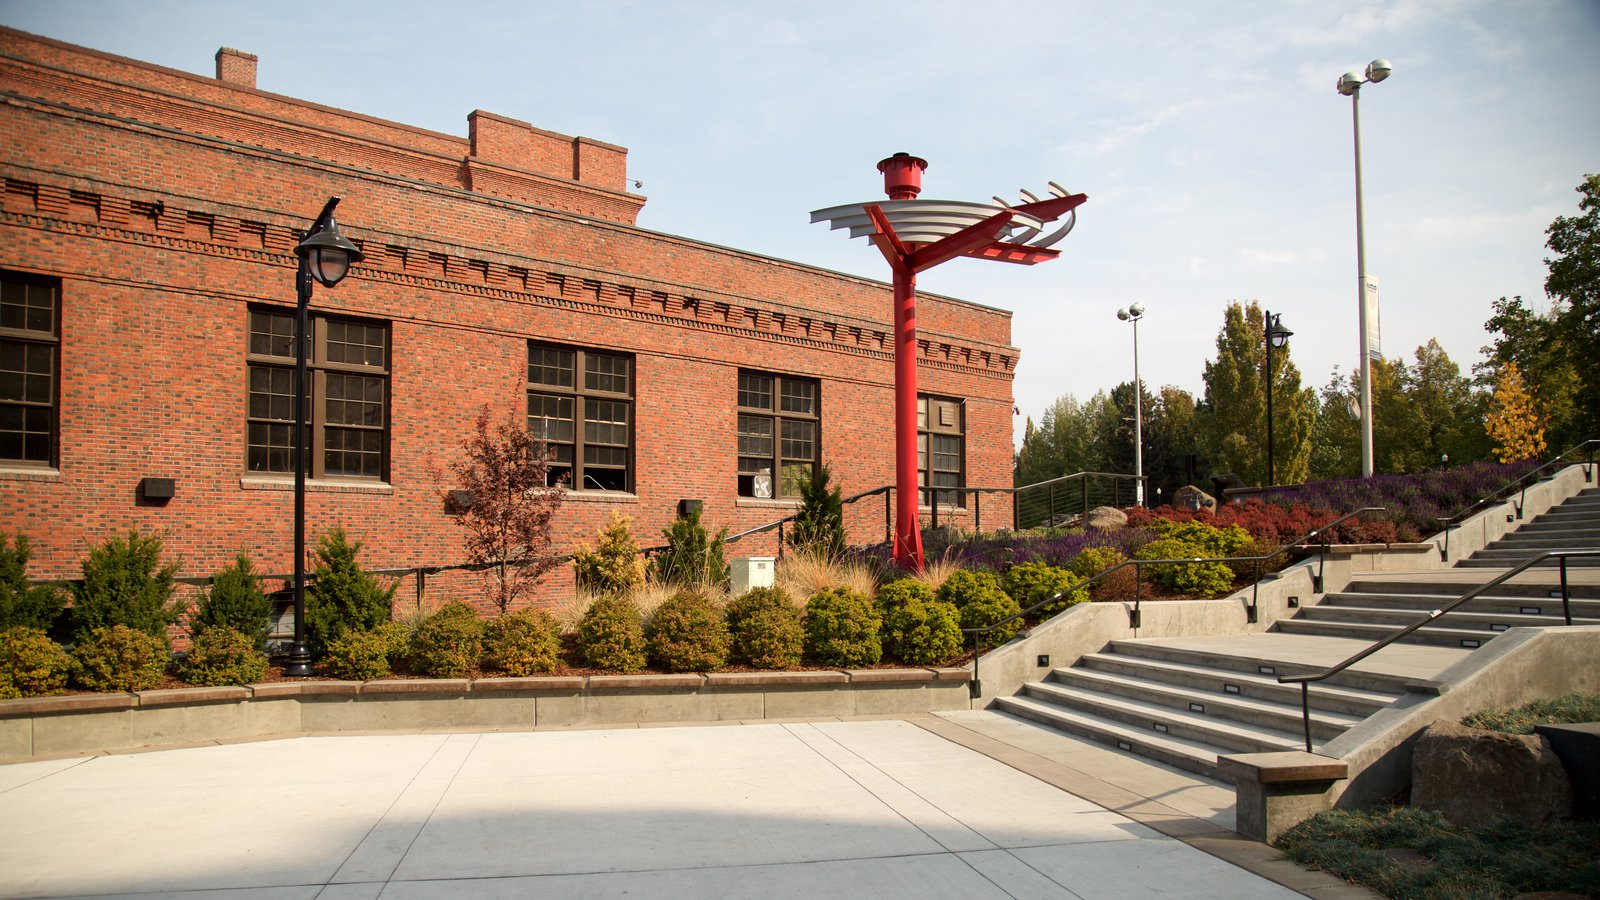 Historic Buildings Pictures: View Images of Spokane